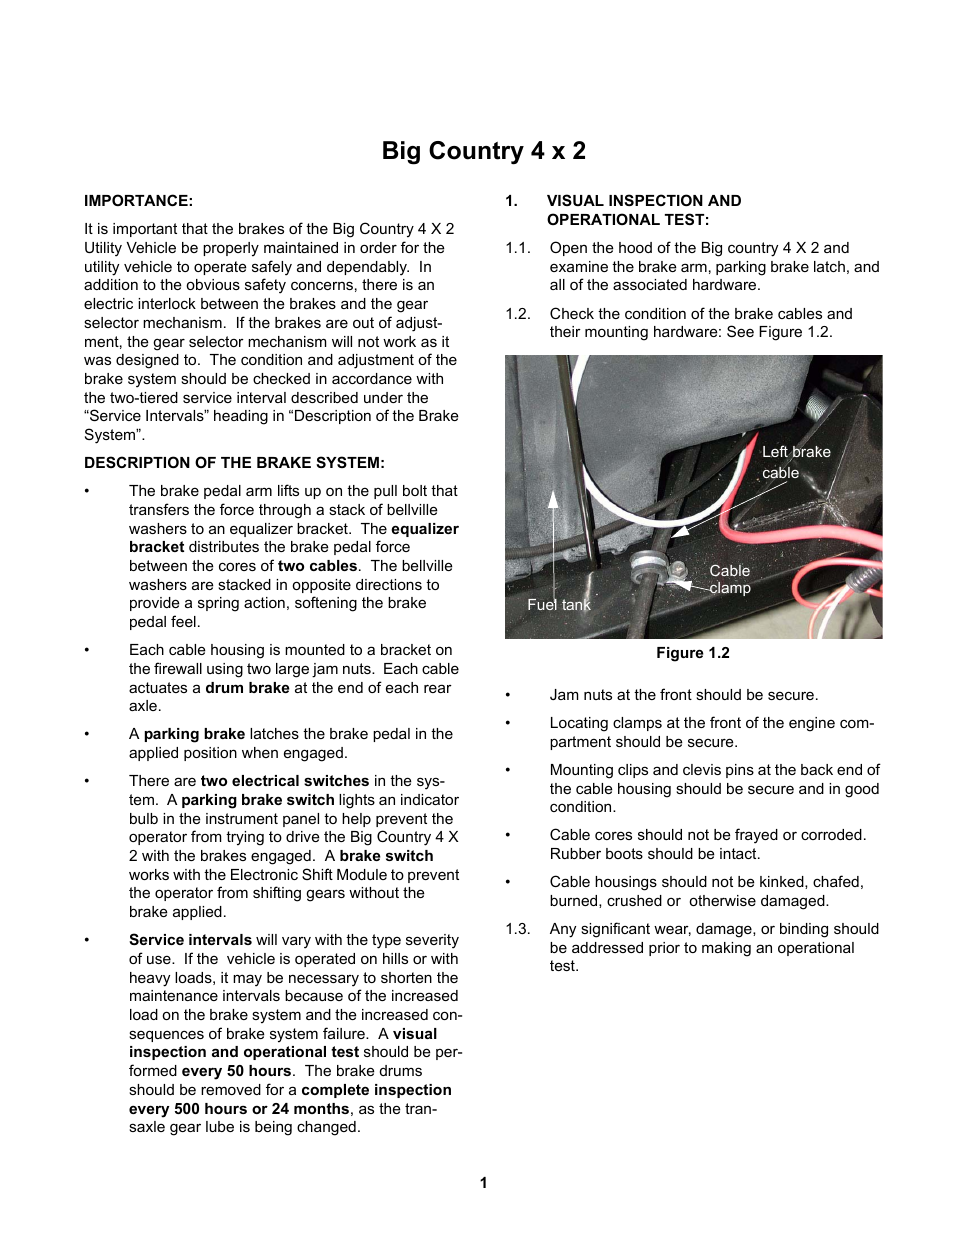 Big country 4x2, Description of the brake system, Visual inspection and  operational test | Cub Cadet 4 x 2 Big Country - Steel Bed User Manual |  Page 5 / 38